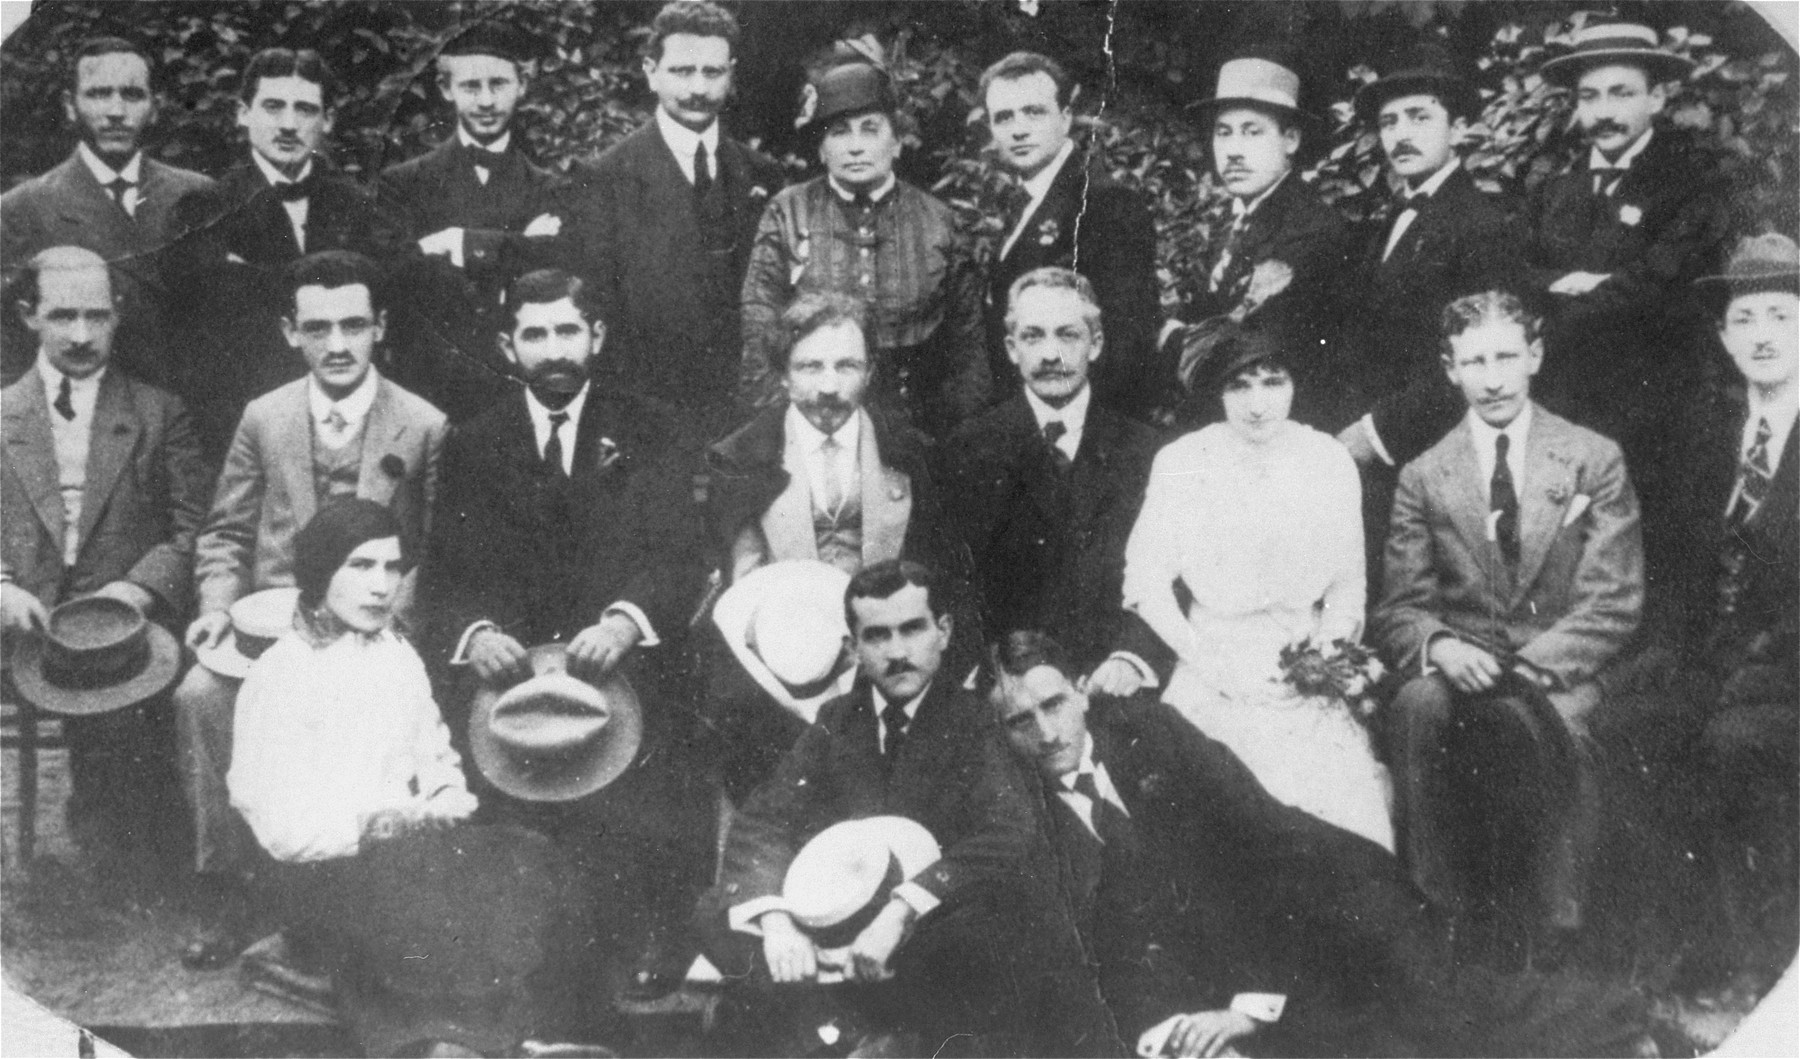 The Yiddish writer Sholem Aleichem poses with prominent members of the Jewish community during his visit to Bedzin.   Pictured in the back row from left to right are: Icie Wygodzki, Goldsztajn and Abram Liwer.  Sholem Aleichem is seated in the middle row, fourth from the left, holding his hat.